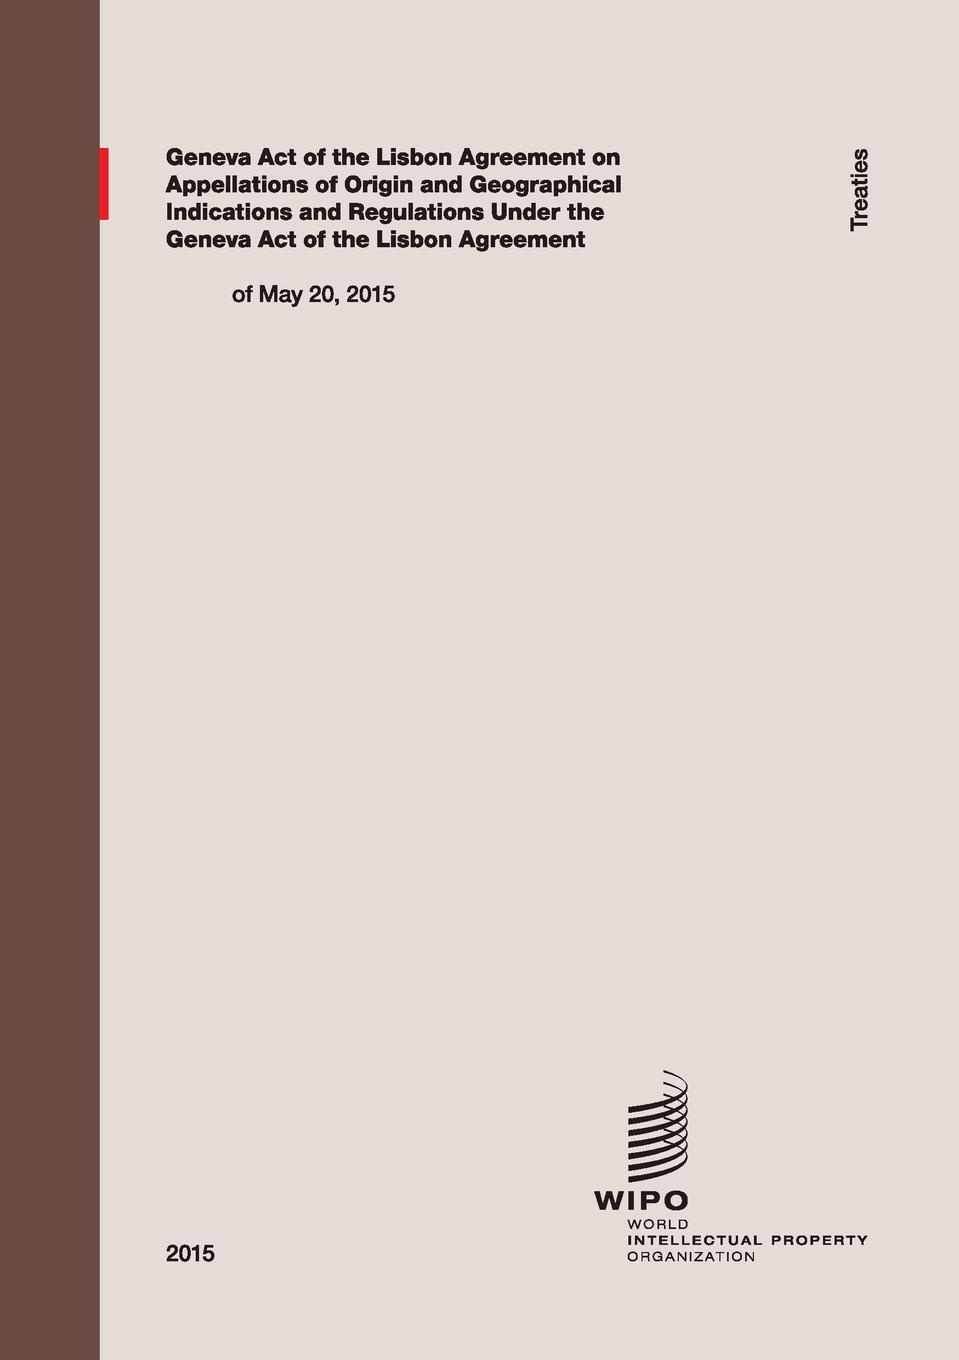 Geneva Act of the Lisbon Agreement on Appellations of Origin and Geographical Indications